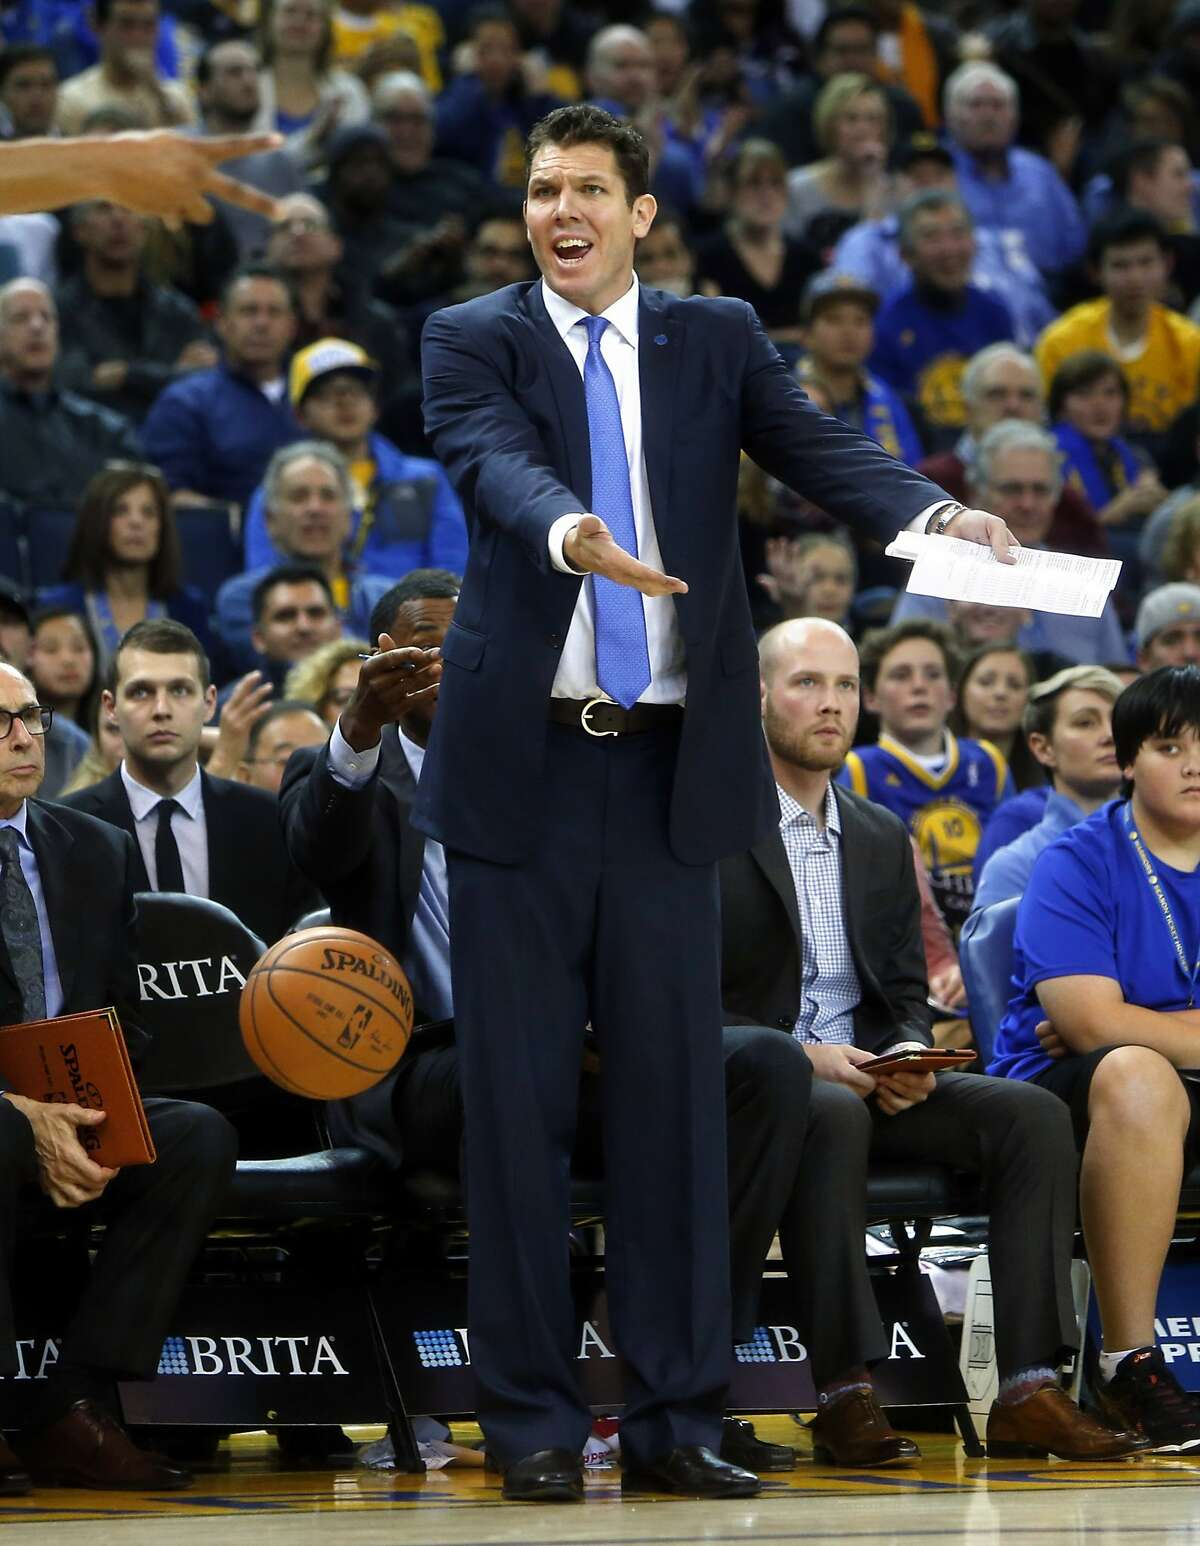 Golden State Warriors' interim head coach Luke Walton reacts to a non-call during NBA game against Sacramento Kings at Oracle Arena in Oakland, Calif., on Monday, December 28, 2015.